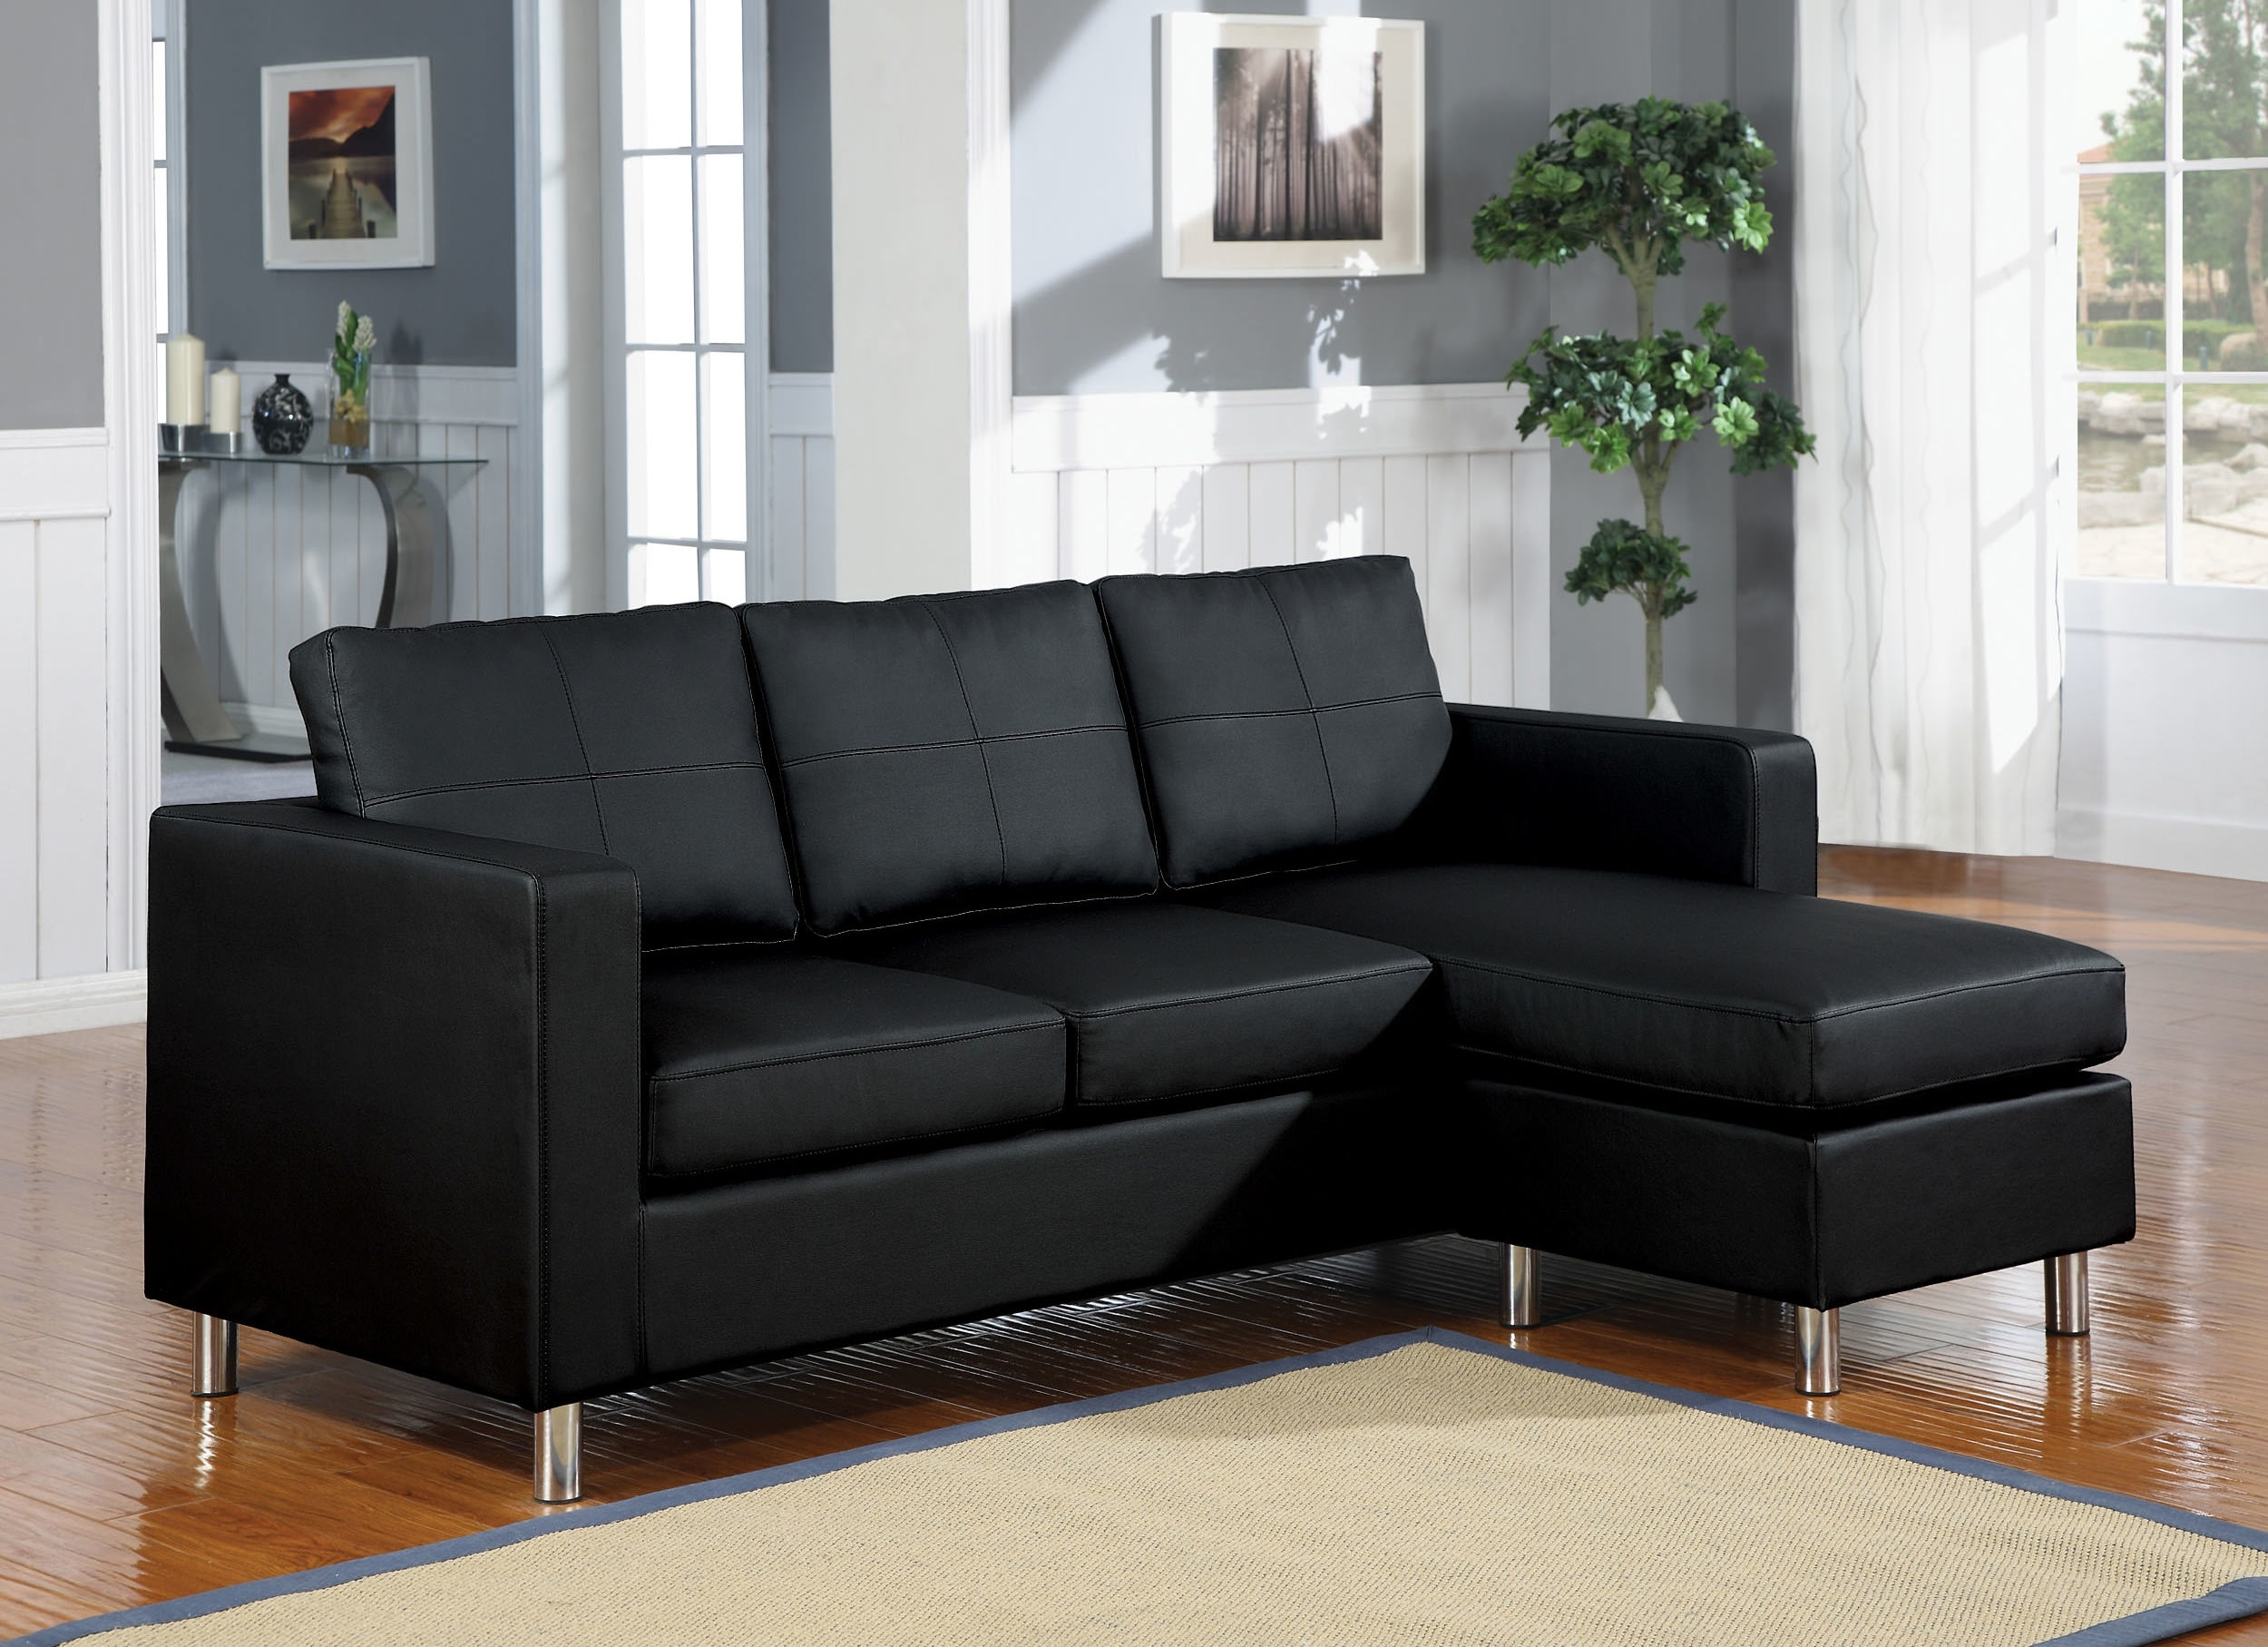 Sofa Planer 10 Best Collection Of Black Leather Sectionals With